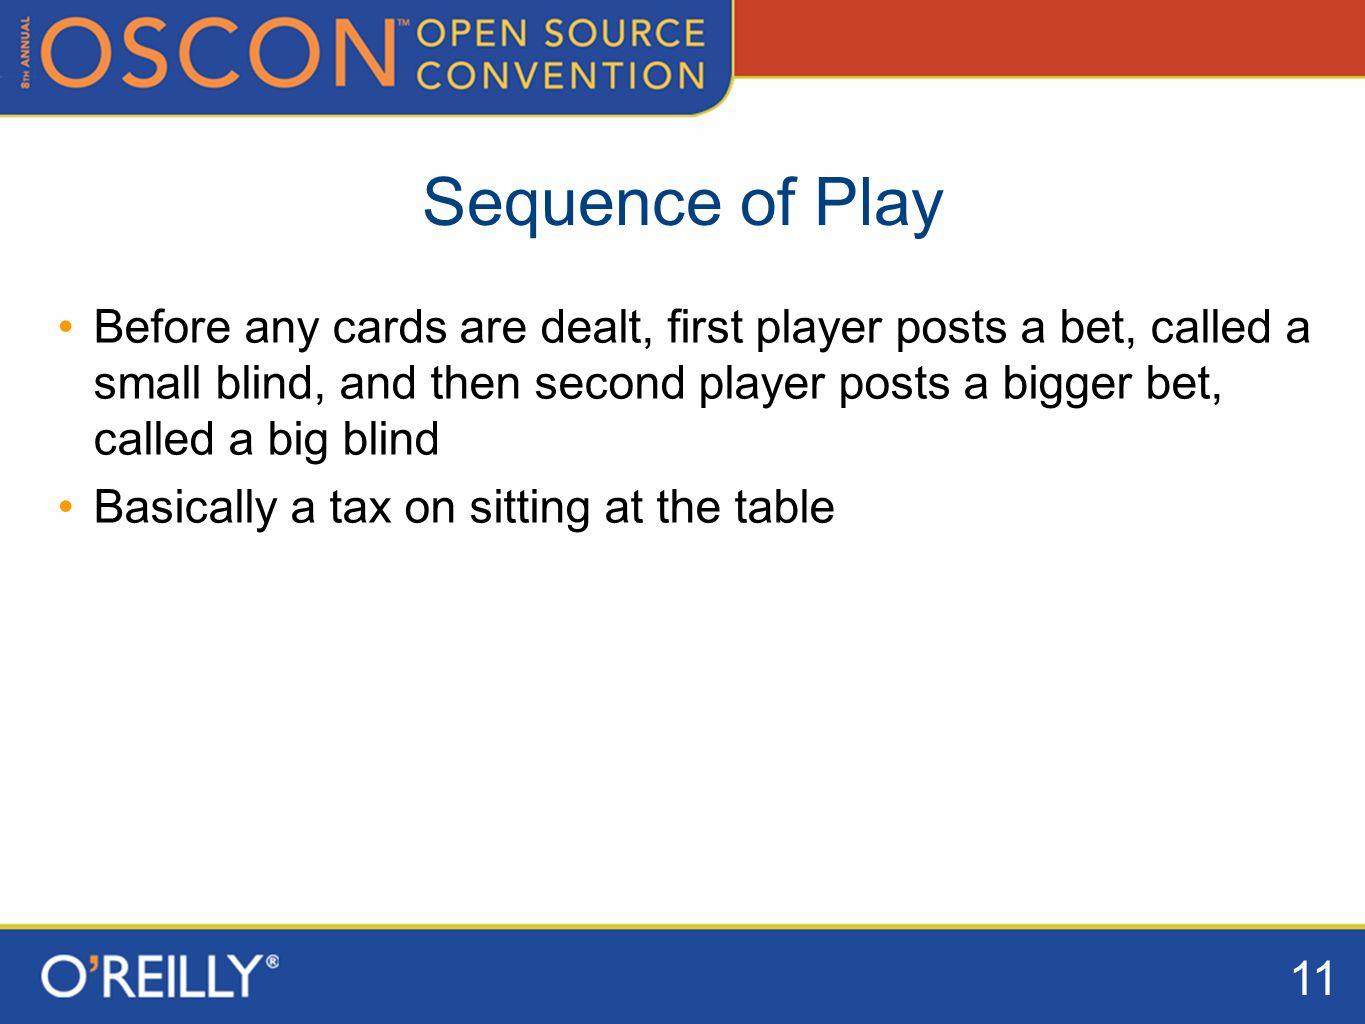 11 Sequence of Play Before any cards are dealt, first player posts a bet, called a small blind, and then second player posts a bigger bet, called a big blind Basically a tax on sitting at the table